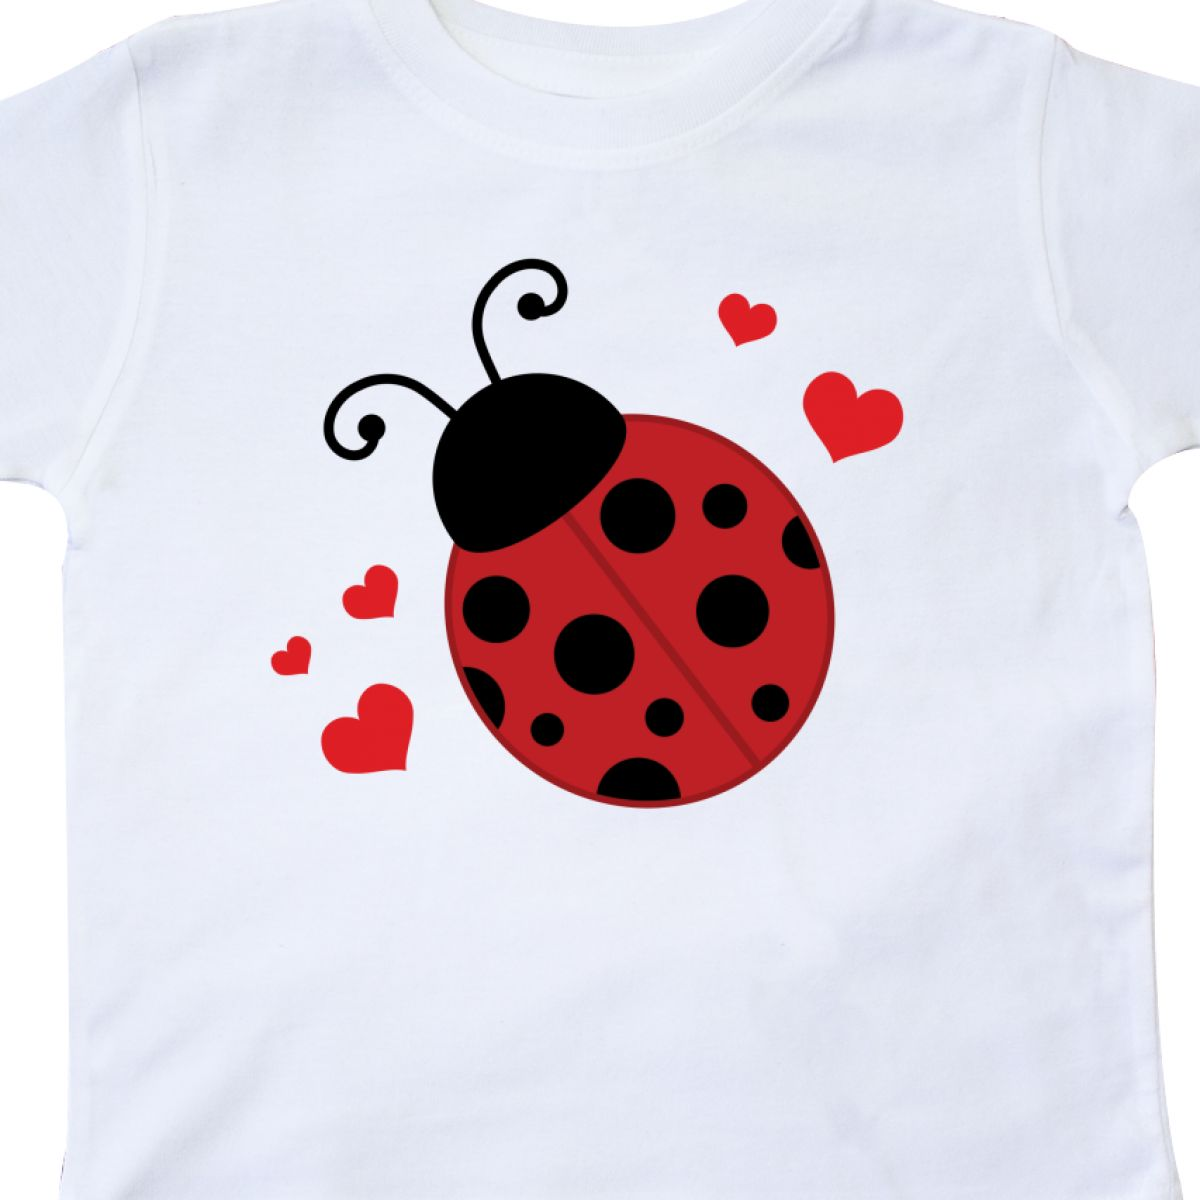 Inktastic-Lady-Bug-And-Hearts-Toddler-T-Shirt-Ladybug-Lover-Bugs-Insects-Cute thumbnail 12